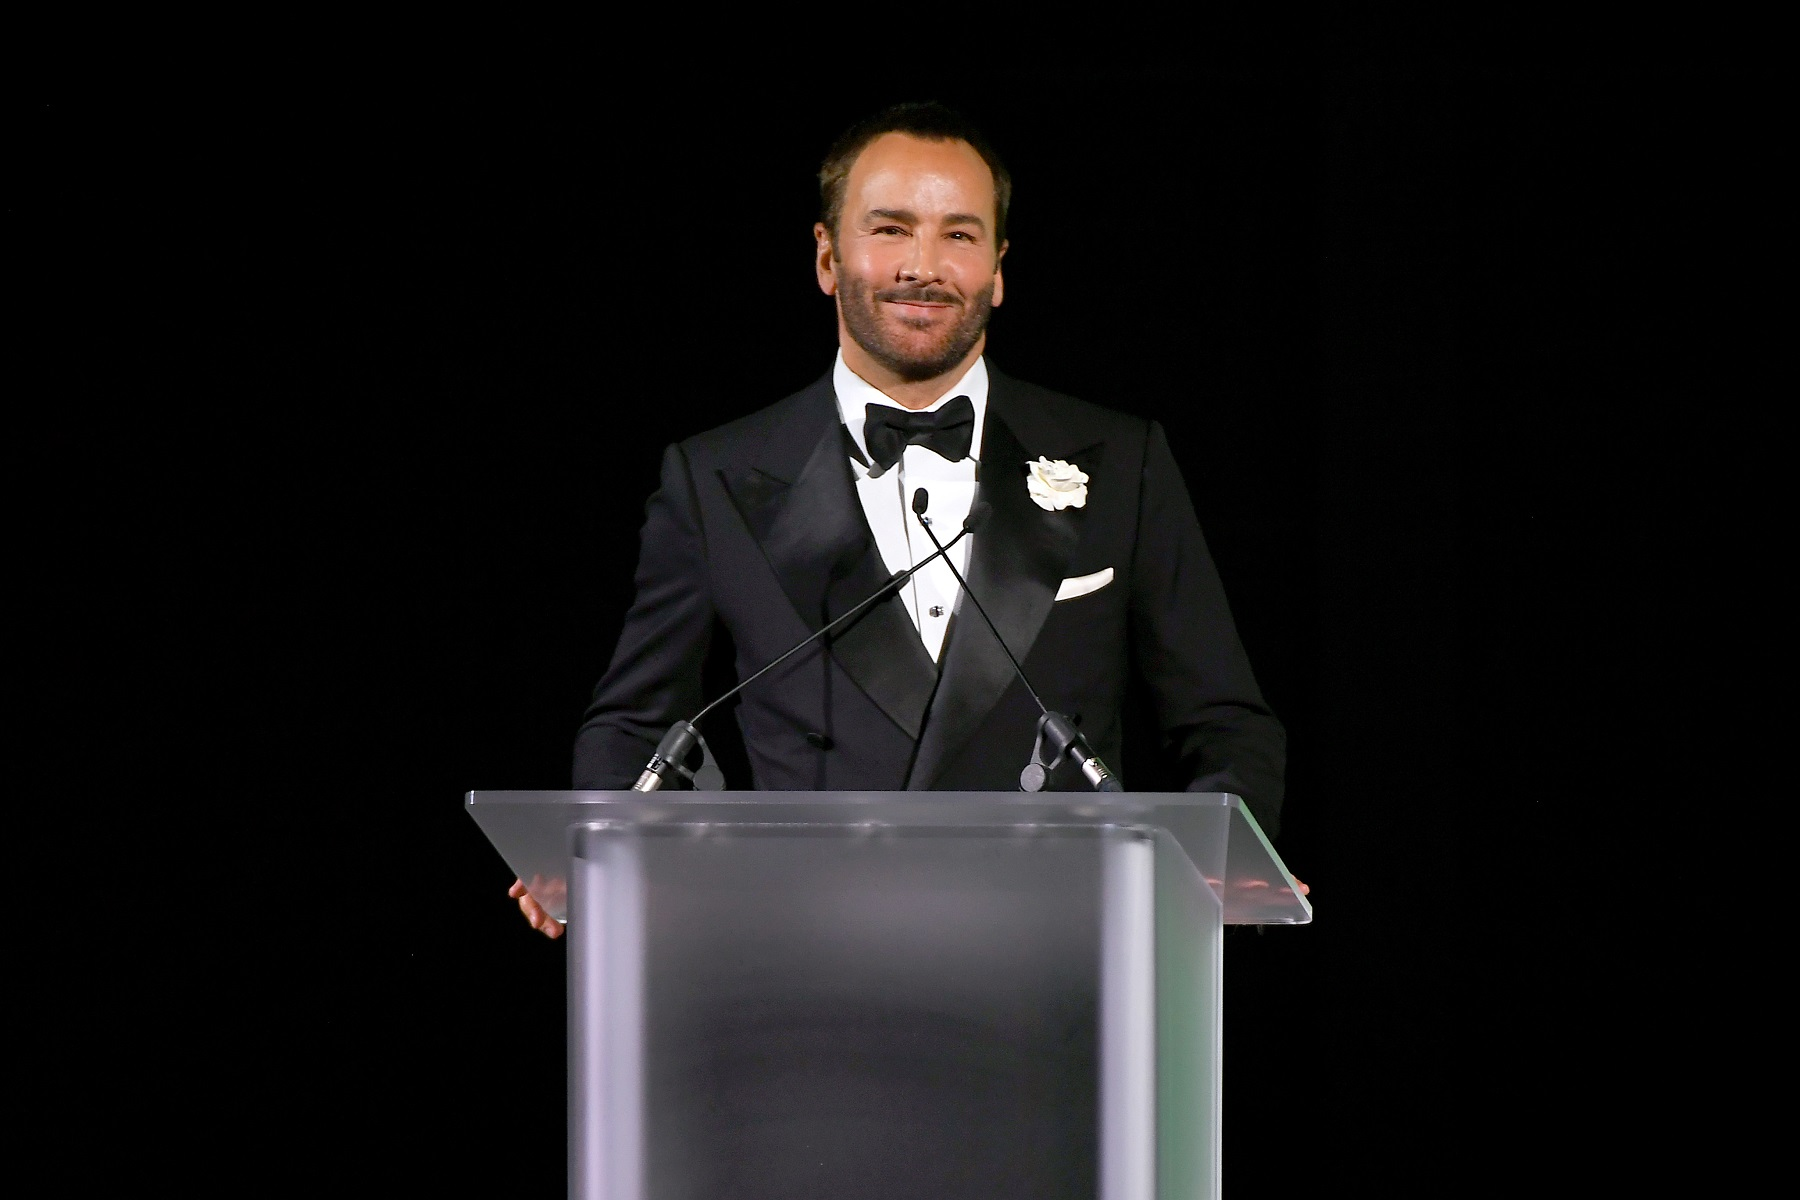 NEW YORK, NEW YORK - JUNE 03: Tom Ford speaks onstage during the CFDA Fashion Awards at the Brooklyn Museum of Art on June 03, 2019 in New York City. (Photo by Nicholas Hunt/Getty Images)